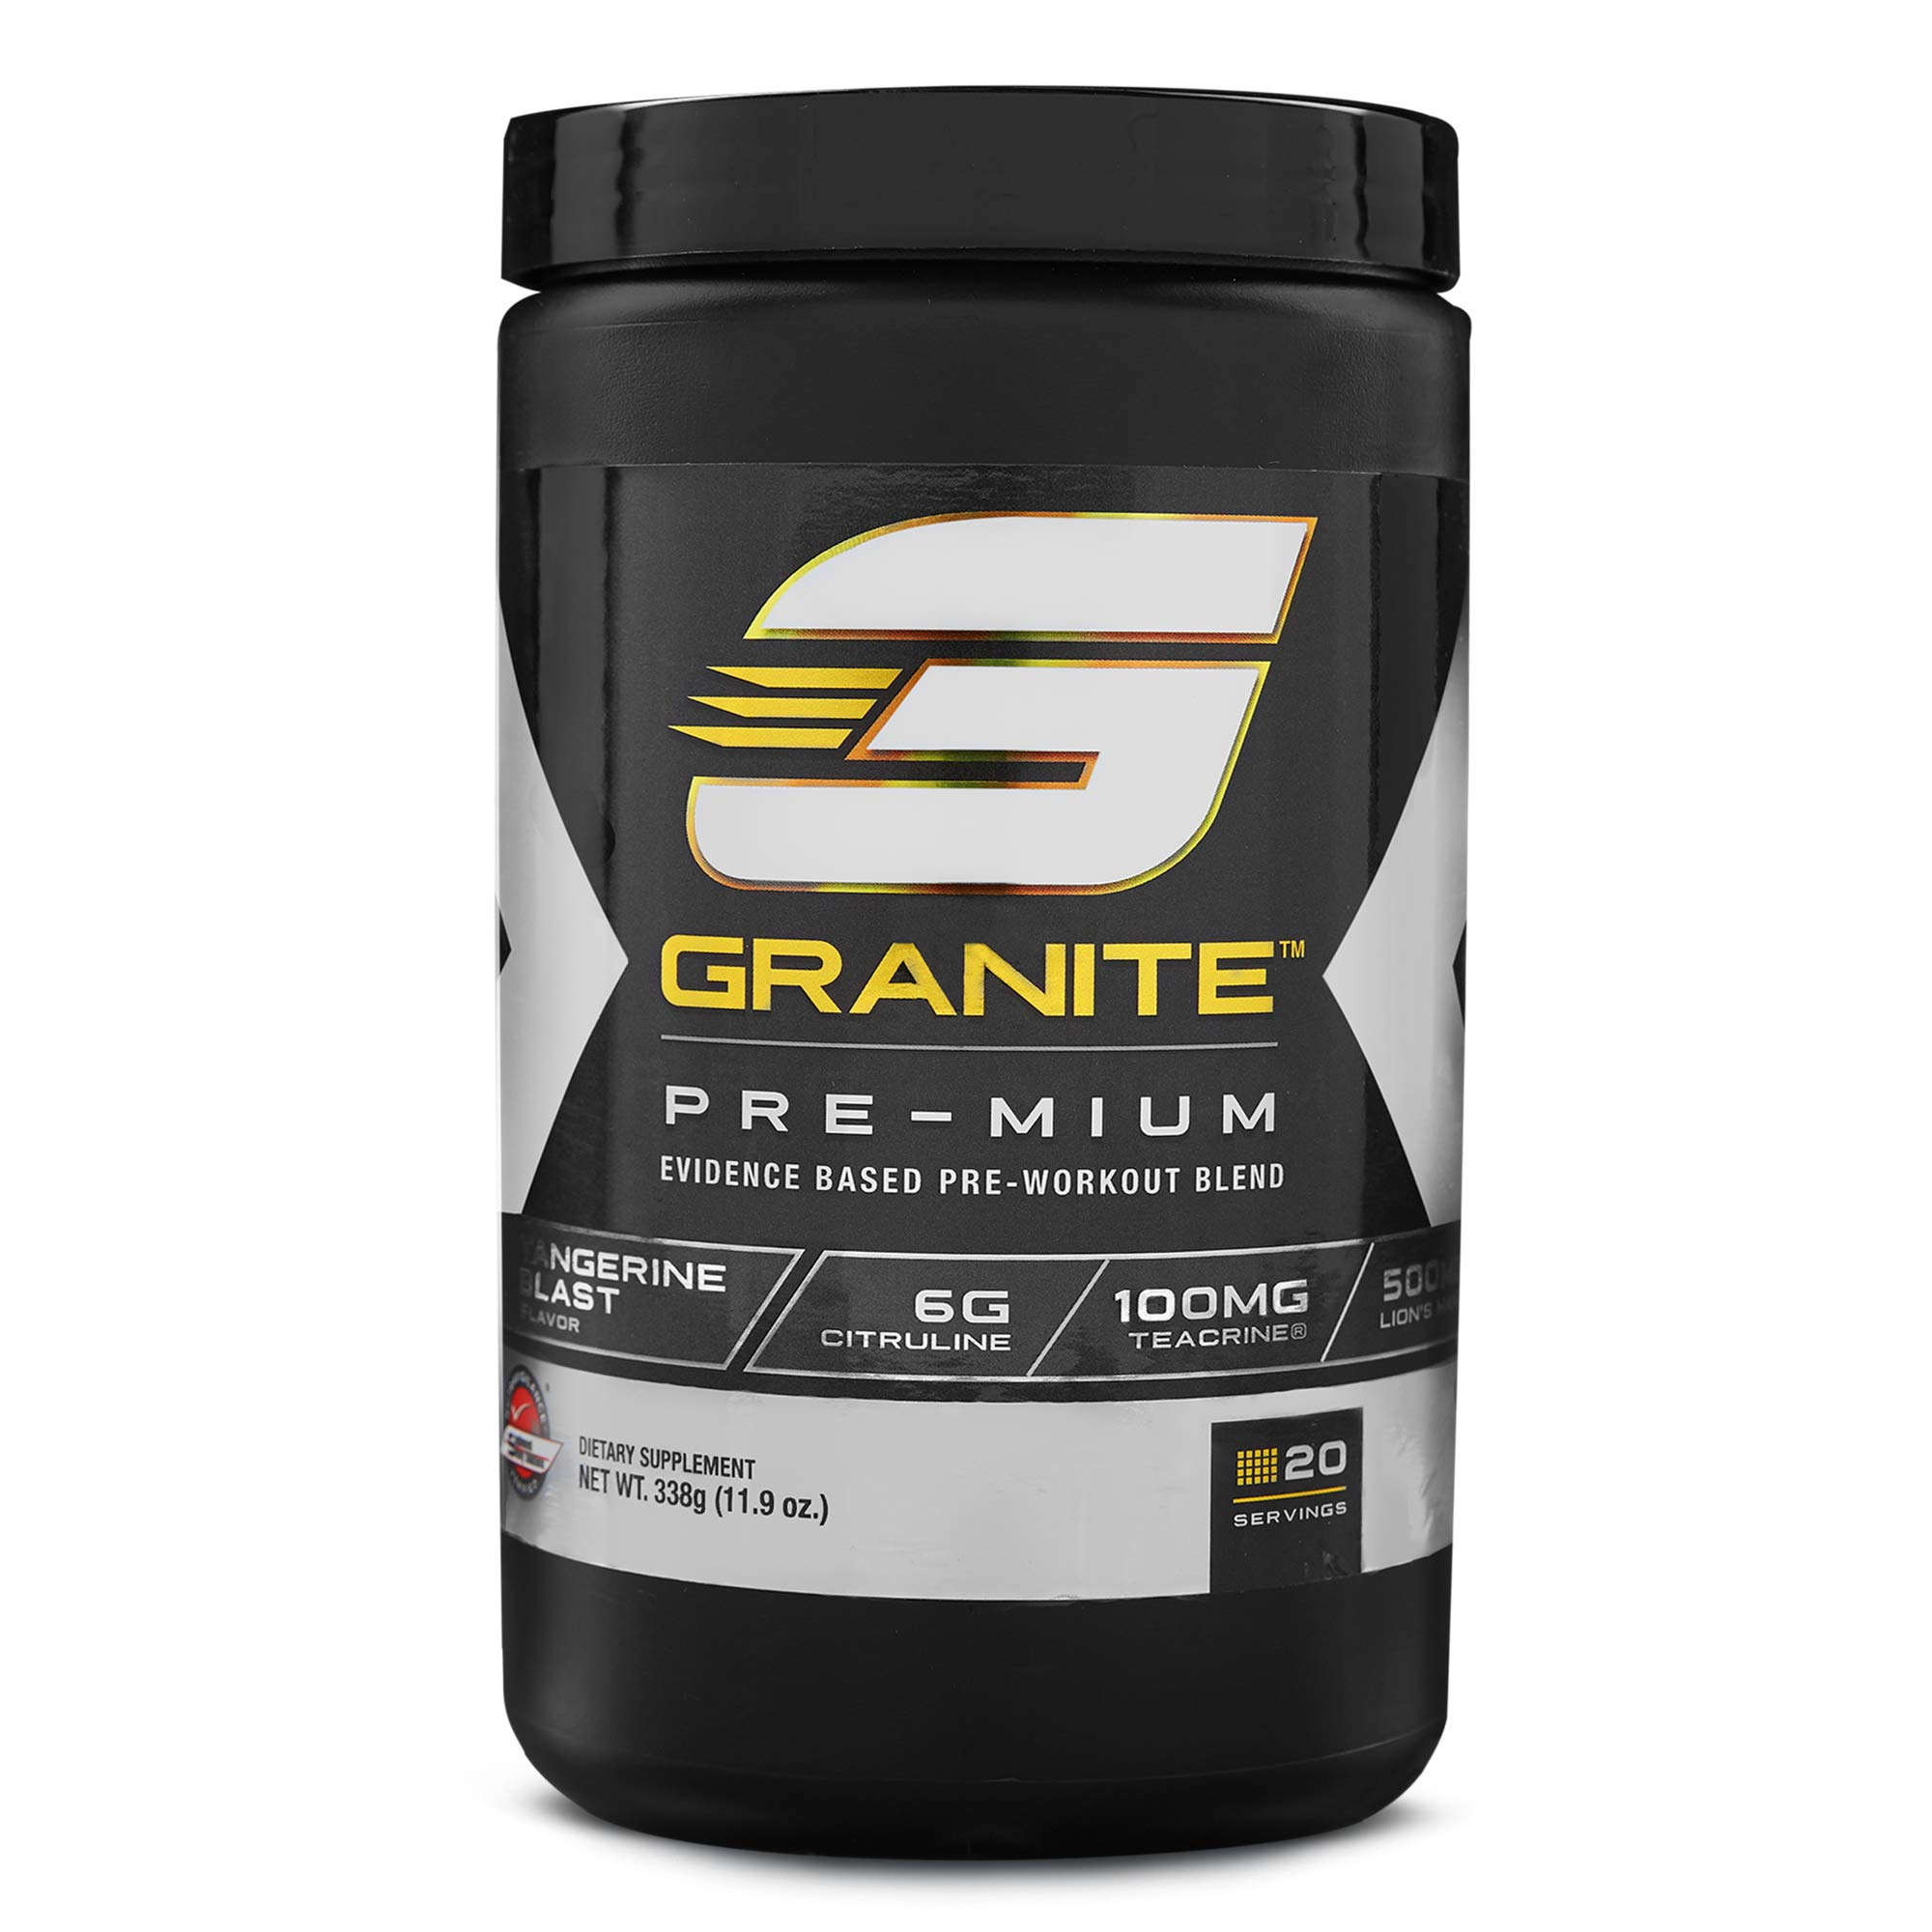 Pre-Workout Powder by Granite Supplements | 20 Servings of Pre-Mium Watermelon Burst to Maximize Strength, Energy, and Mental Endurance | Includes Performance, Pump, and Cognitive Blends